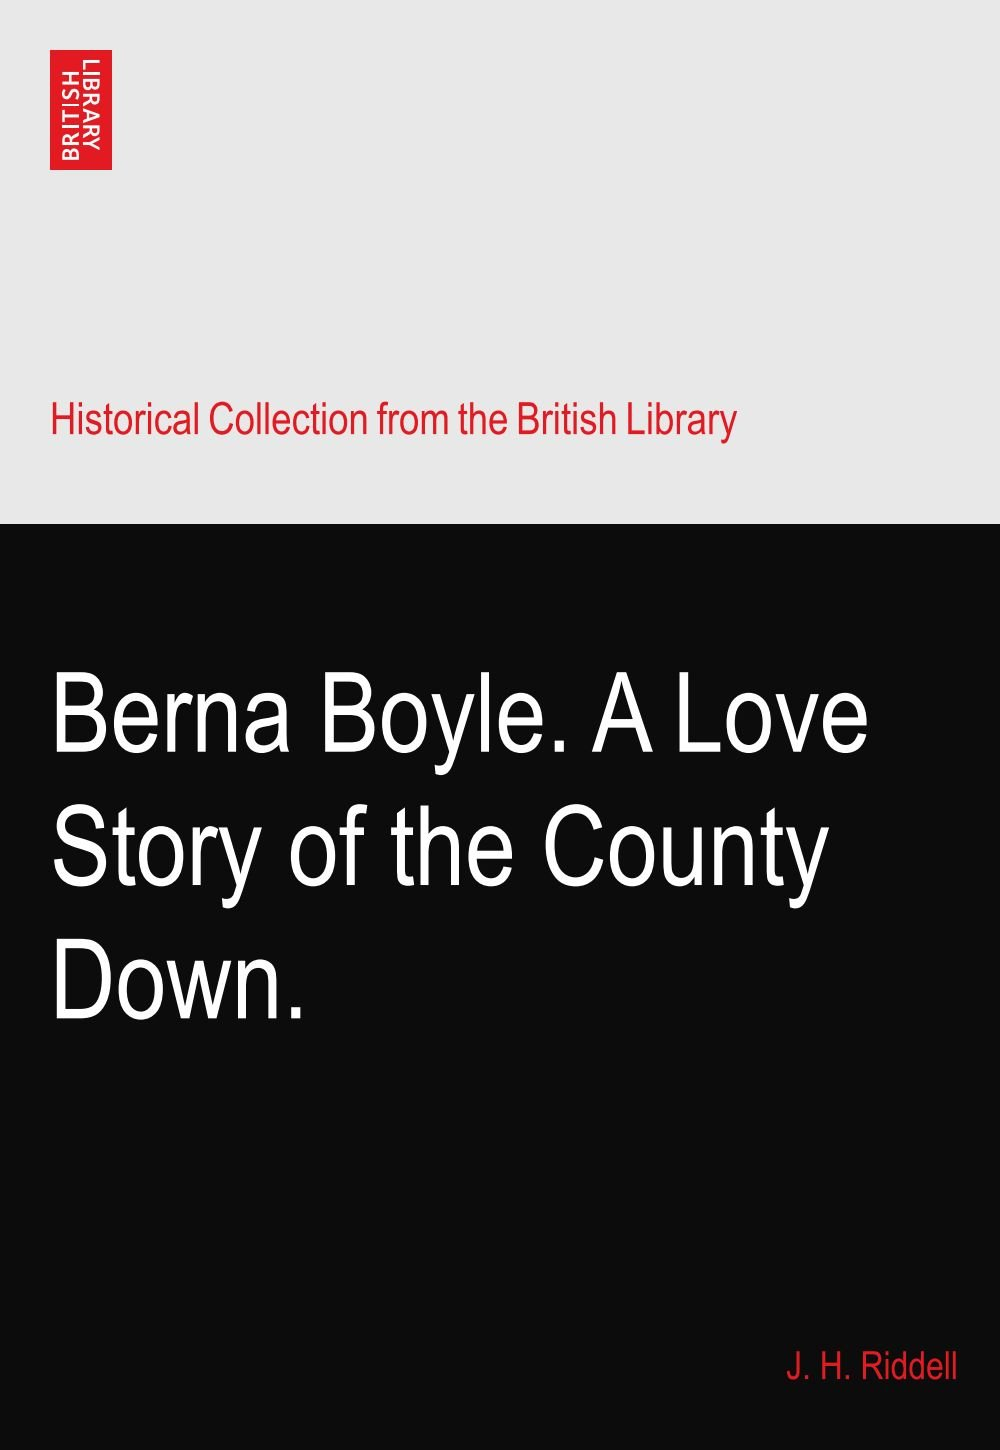 Download Berna Boyle. A Love Story of the County Down. ebook